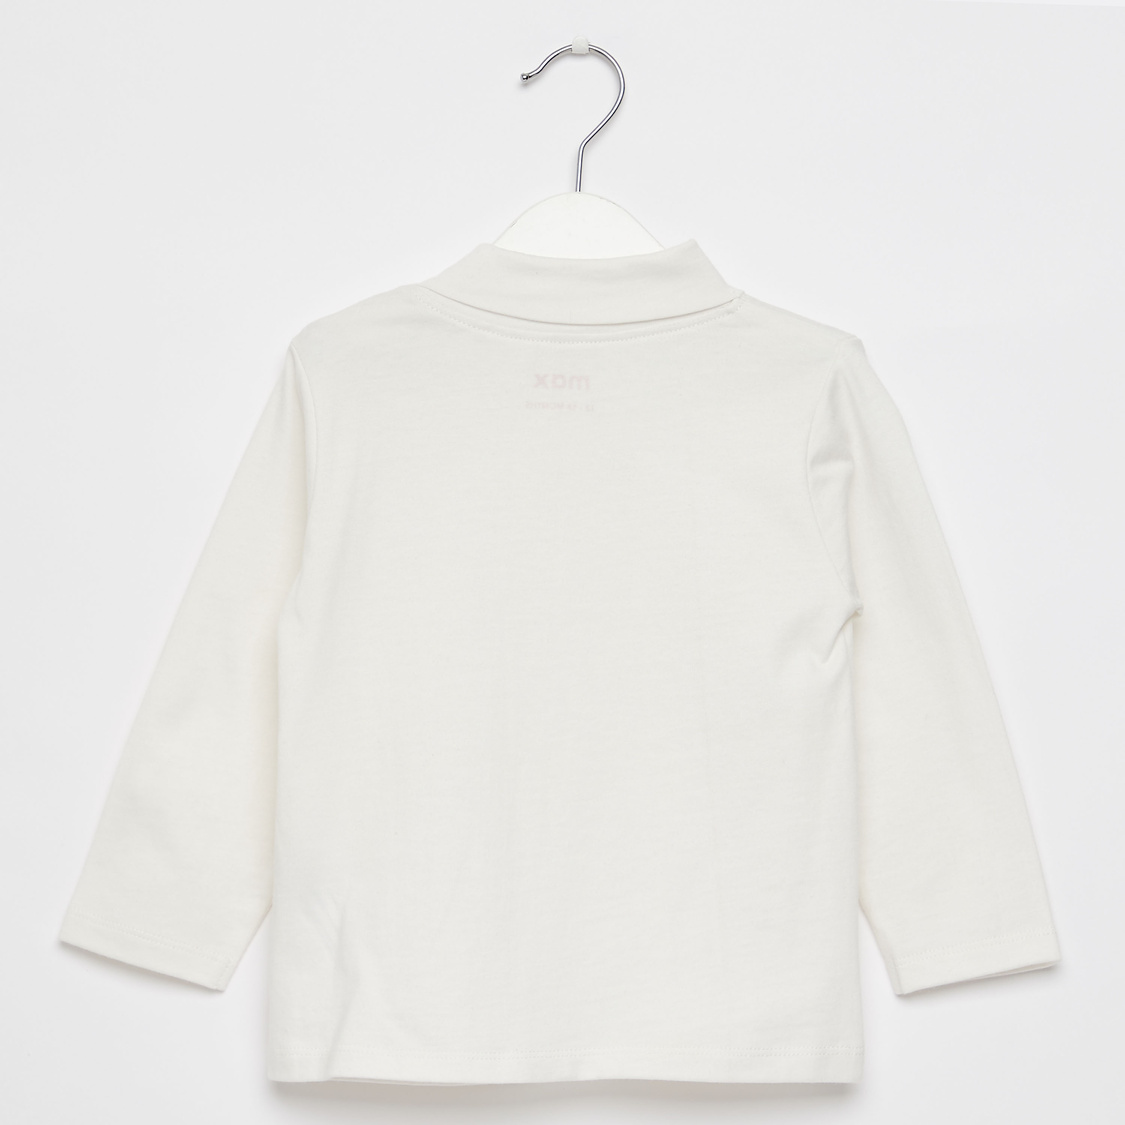 Solid High Neck T-shirt with Long Sleeves